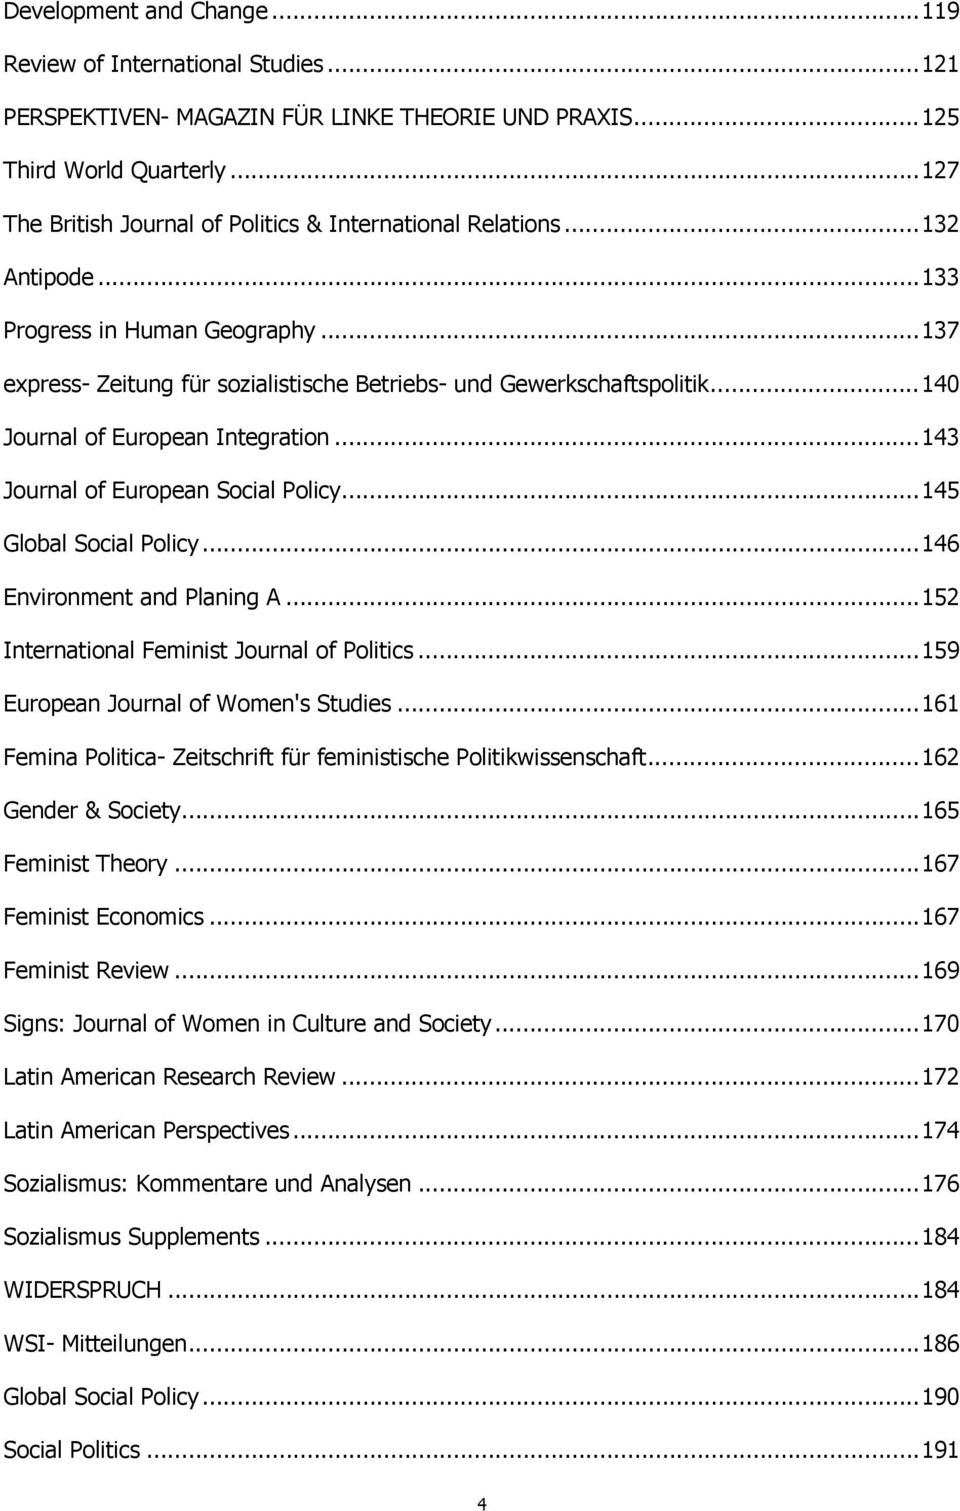 ..140 Journal of European Integration...143 Journal of European Social Policy...145 Global Social Policy...146 Environment and Planing A...152 International Feminist Journal of Politics.